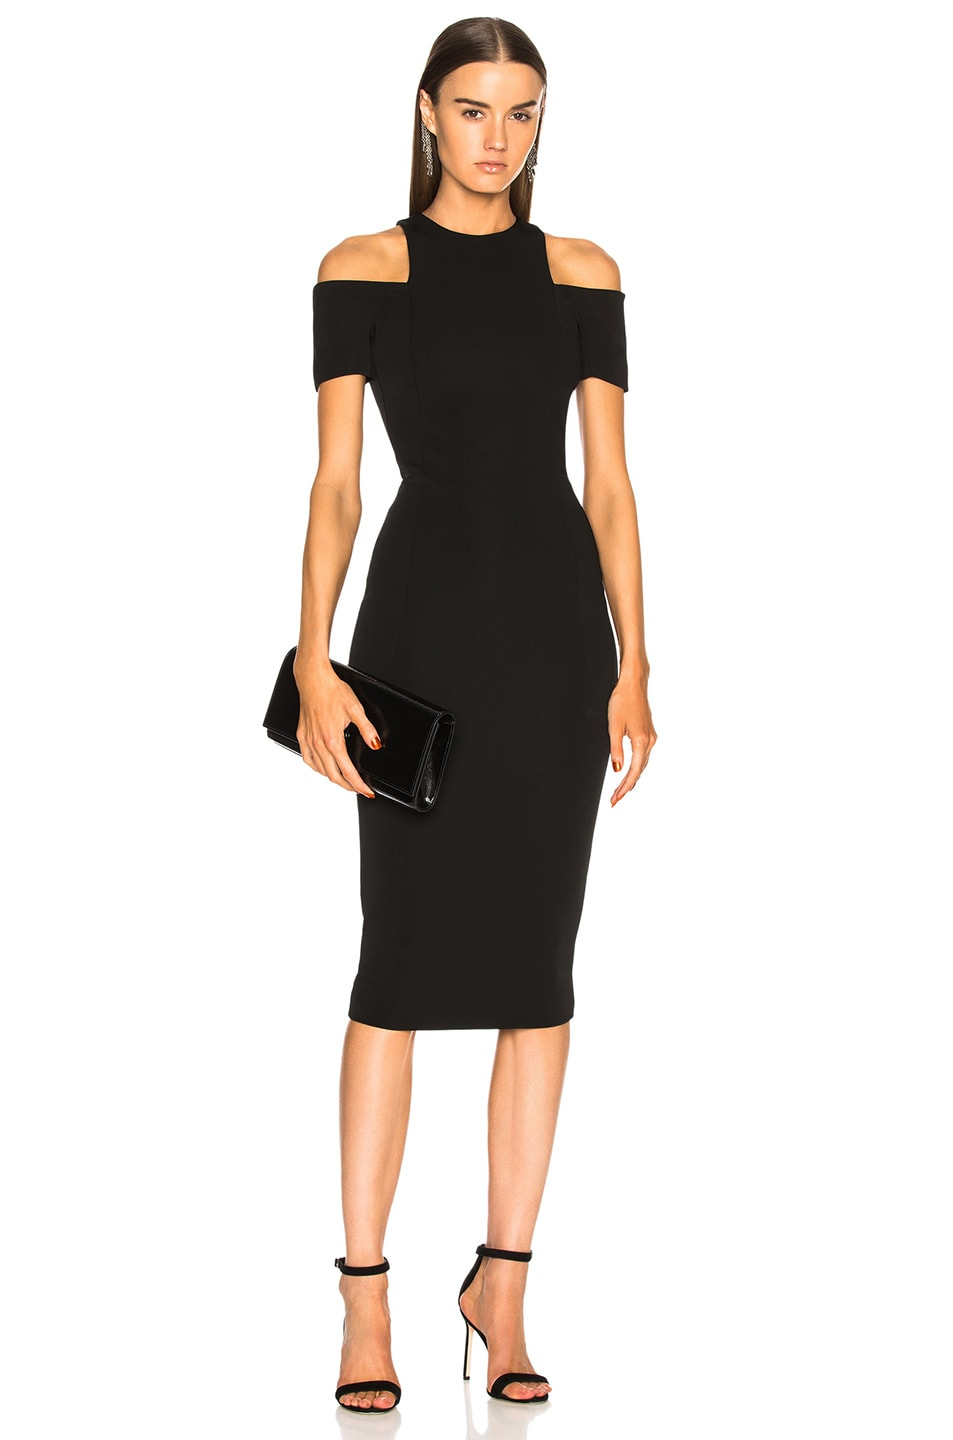 Victoria Beckham Cap Sleeve Cutout Fitted Midi Dress in Black